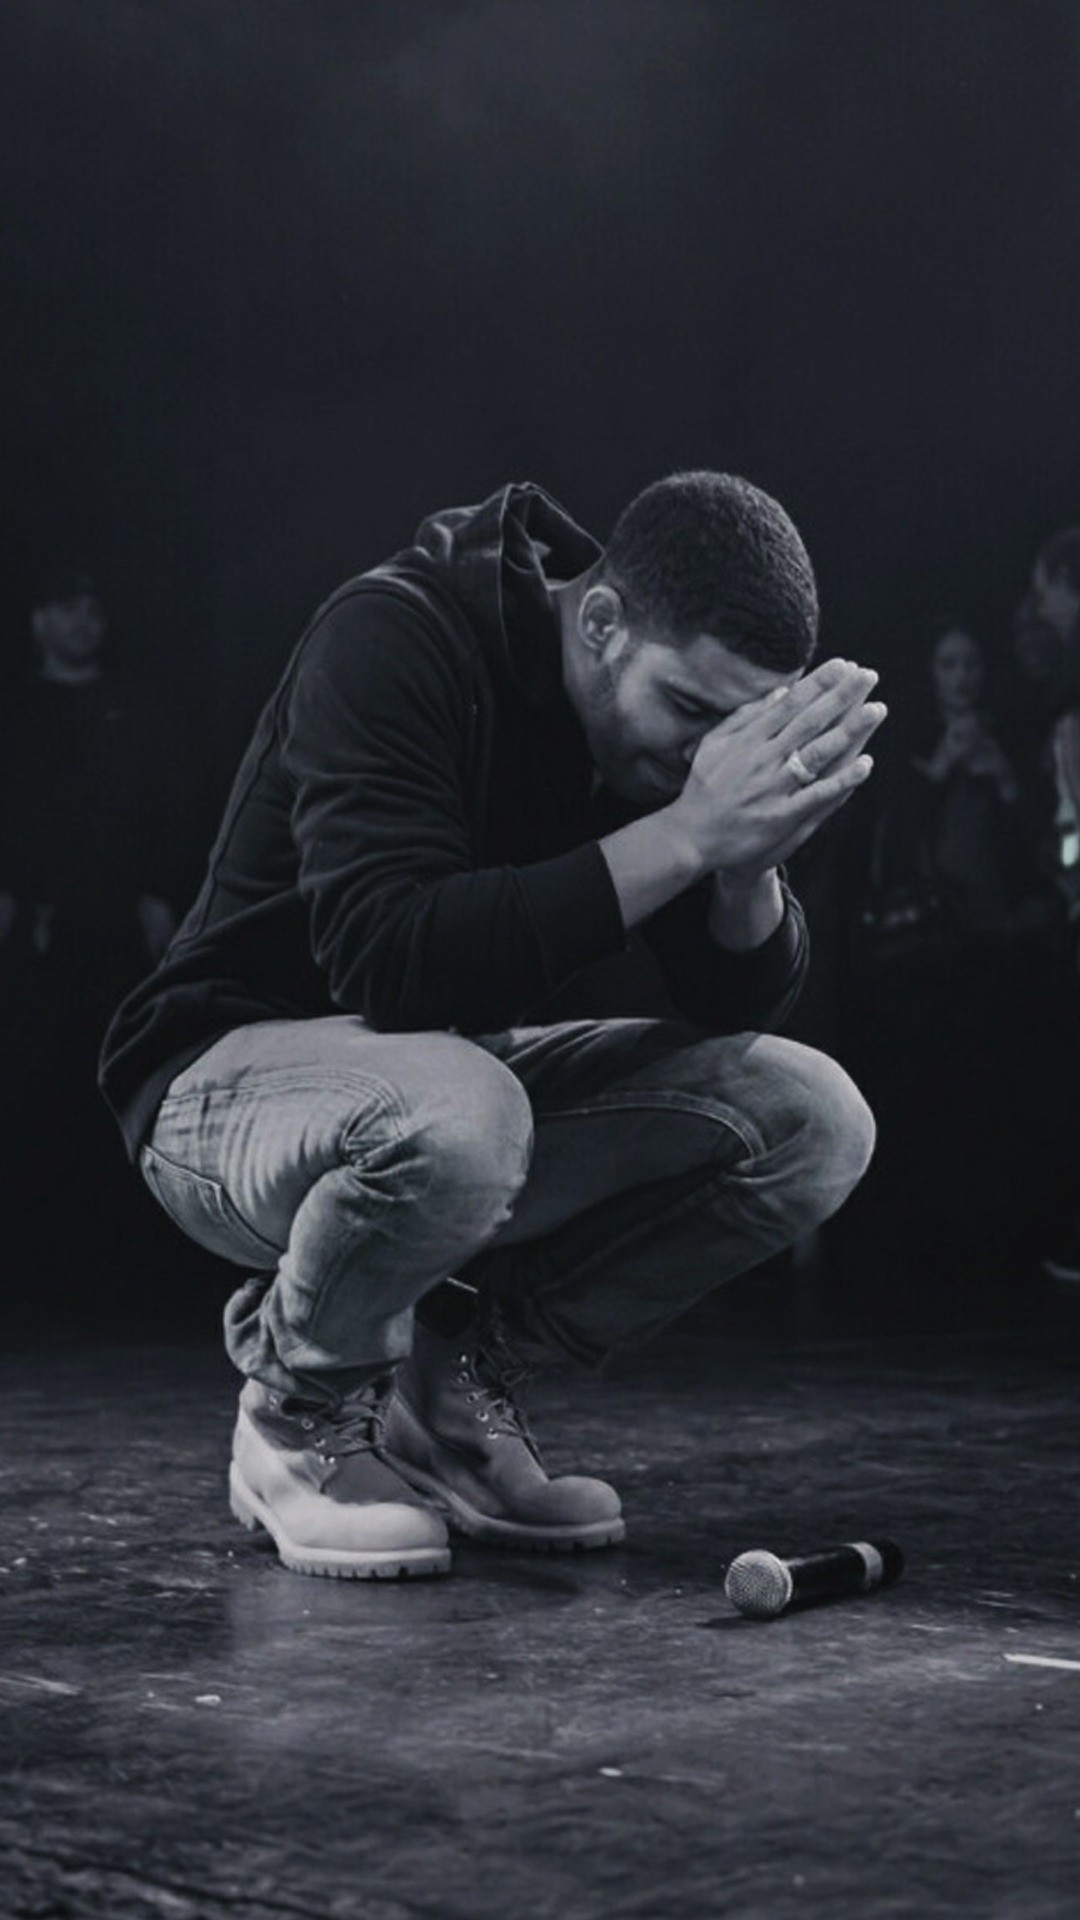 63 Drake Wallpaper 6 God